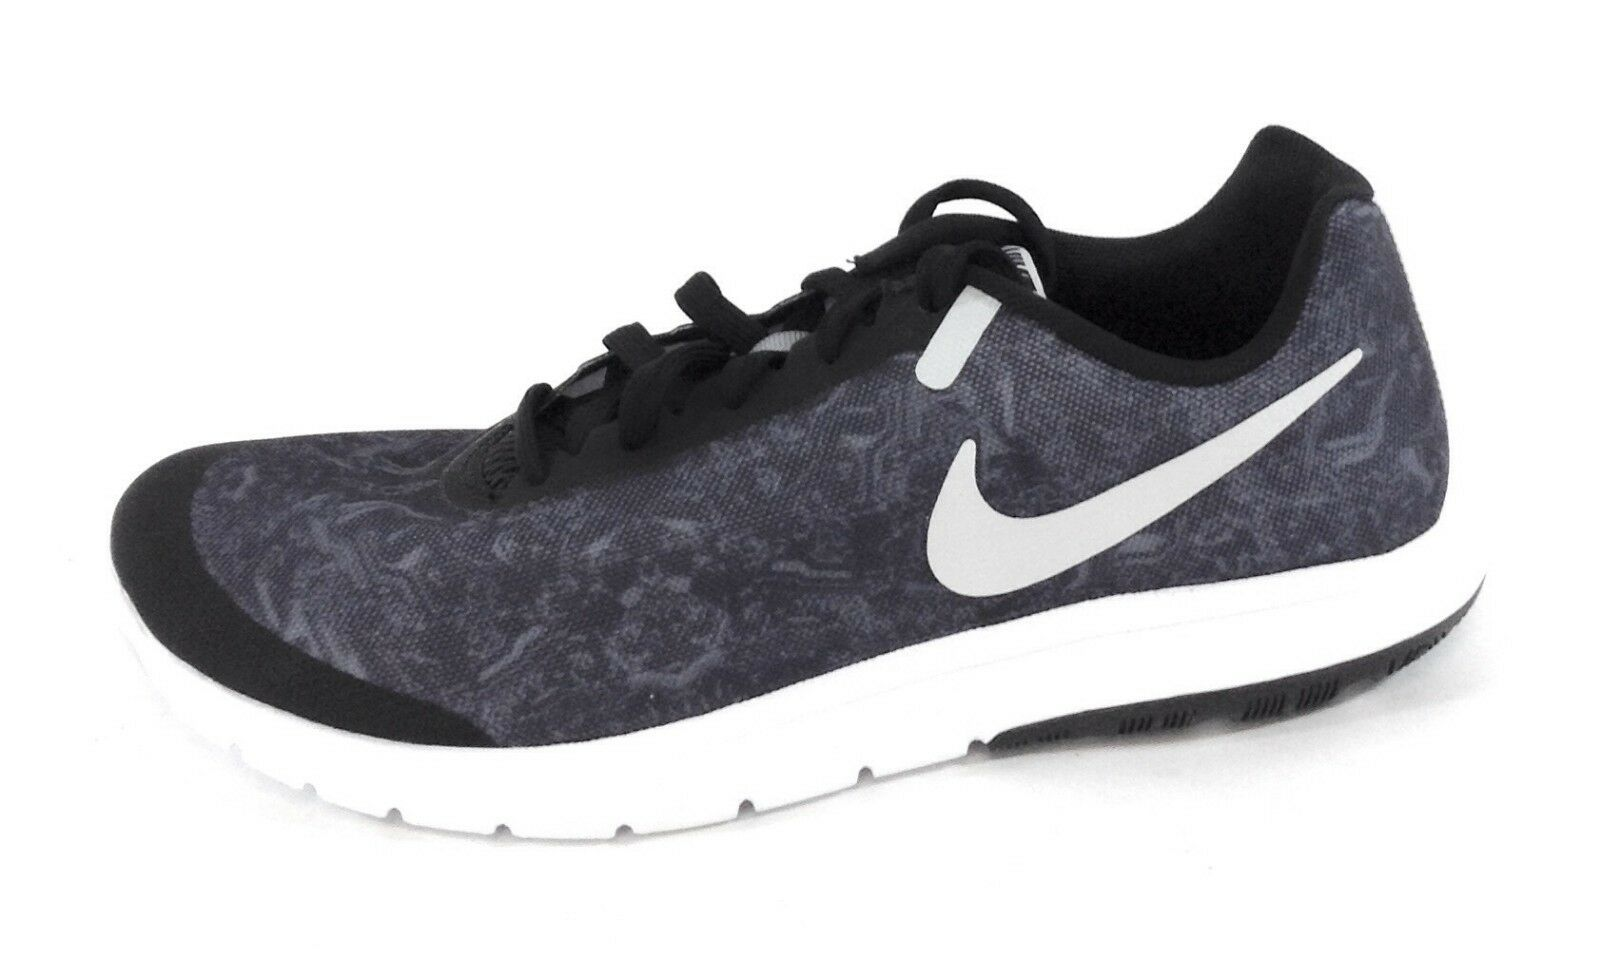 NEW Womens NIKE Flex Experience Experience Experience RN 5 Prem 844673 004 Black Grey Sneakers shoes f7438b